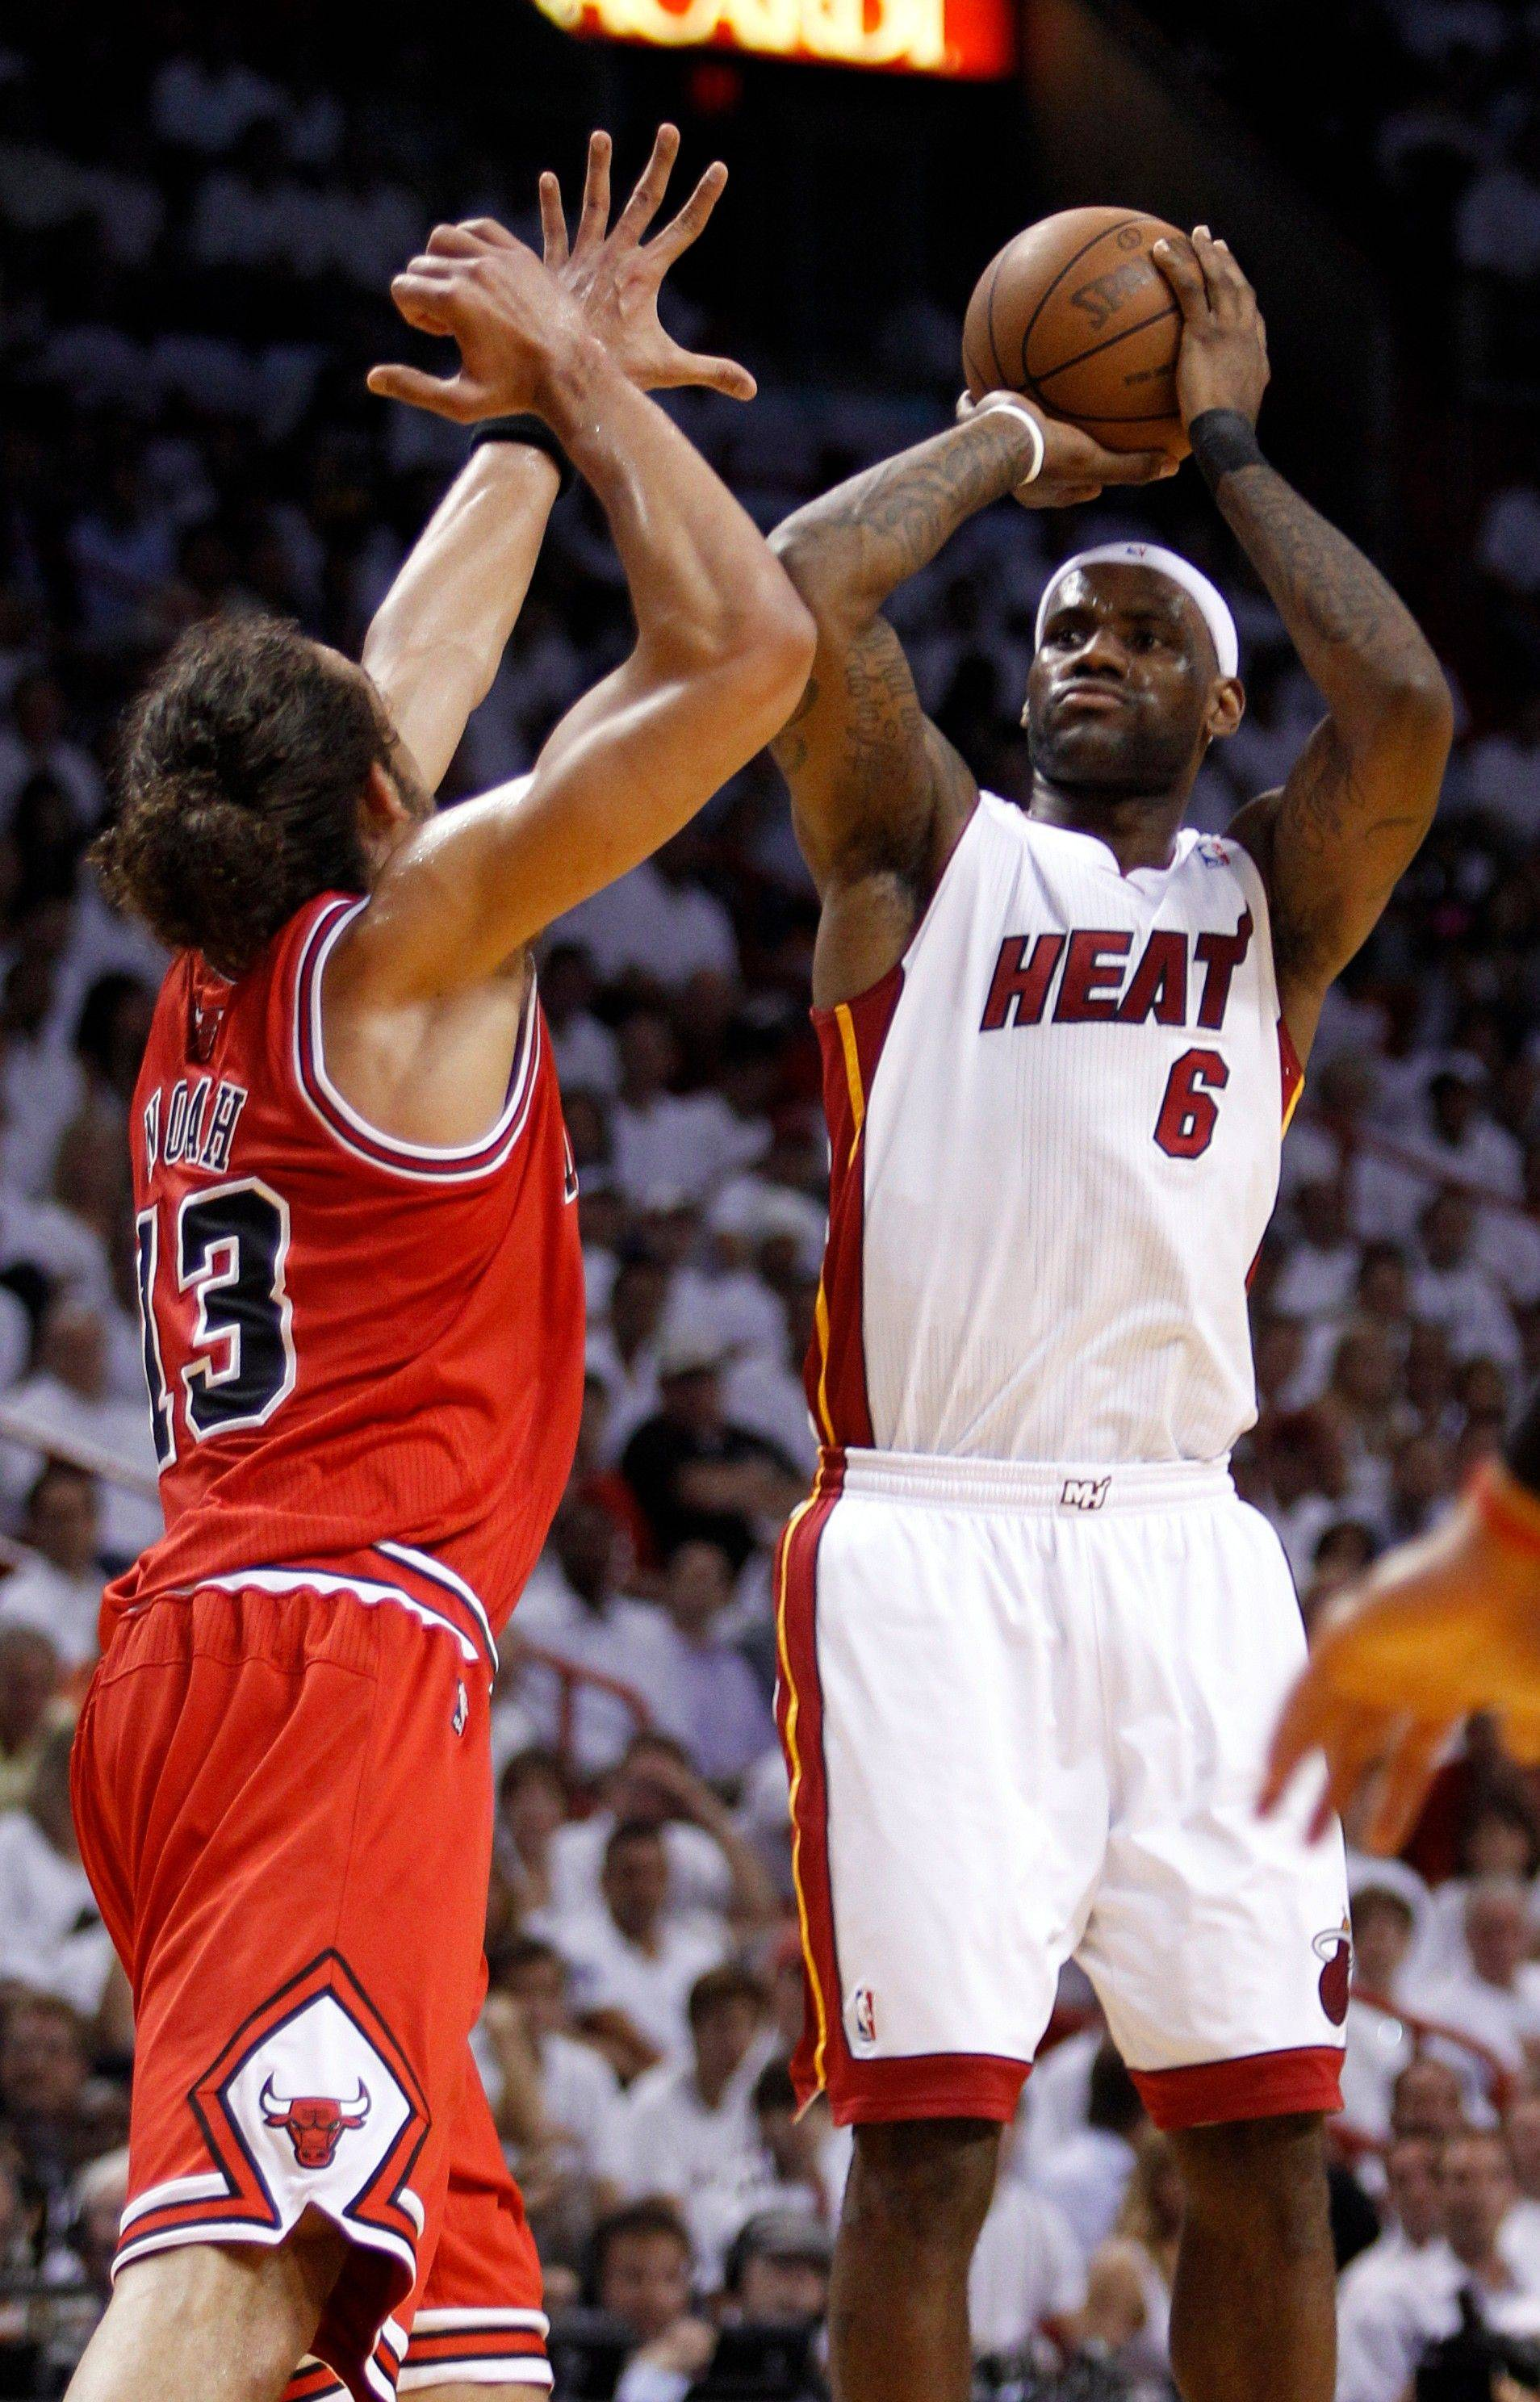 Miami Heat's LeBron James (6) goes for a basket as Chicago Bulls Joakim Noah (13) defends during the first half of Game 4 of the NBA Eastern Conference finals basketball series in Miami, Tuesday, May 24, 2011.